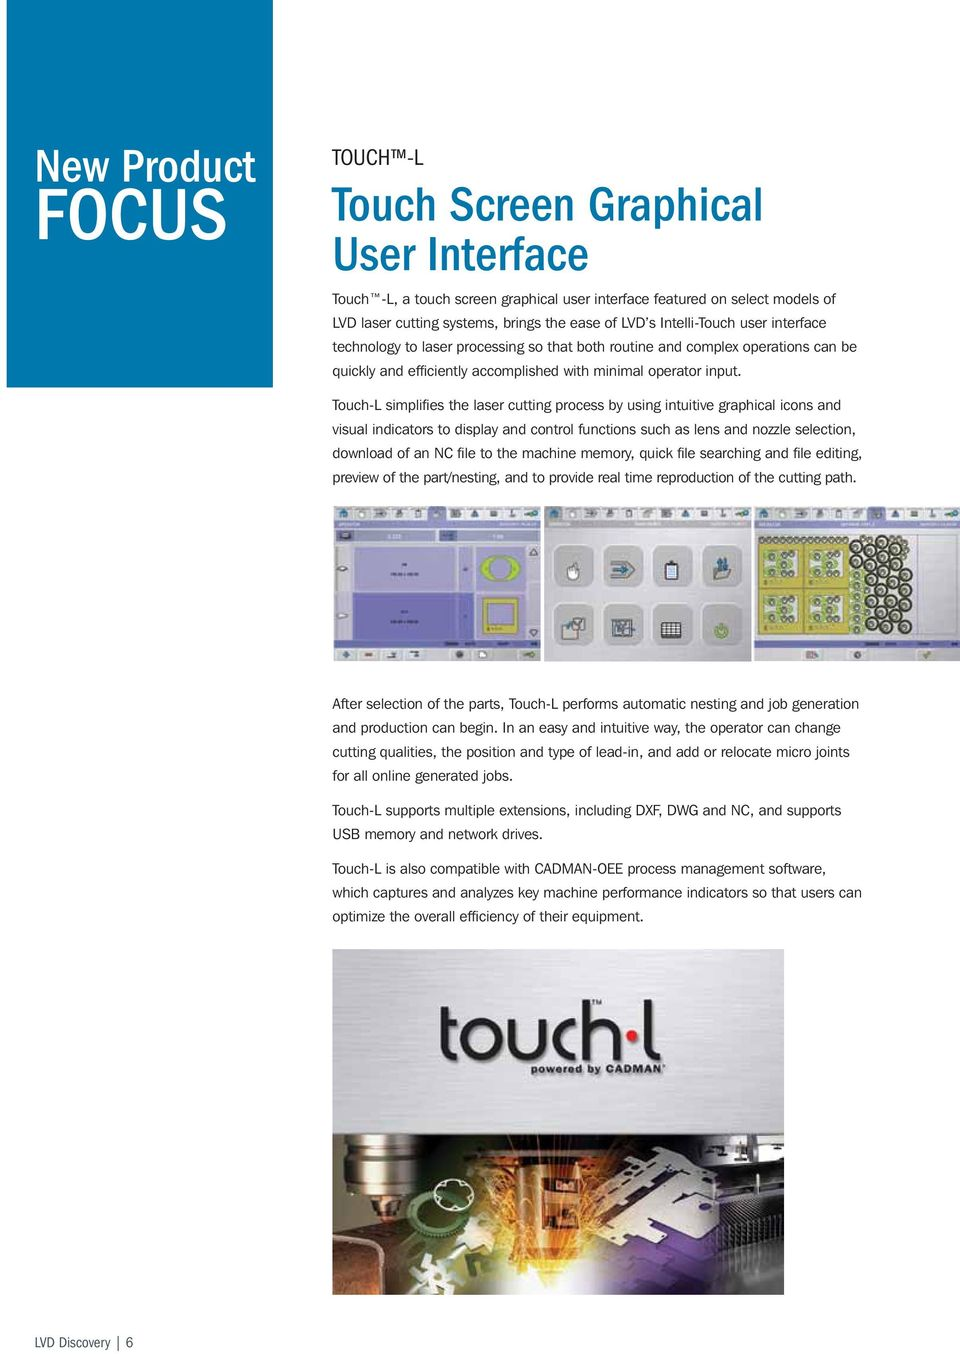 Touch-L simplifies the laser cutting process by using intuitive graphical icons and visual indicators to display and control functions such as lens and nozzle selection, download of an NC file to the